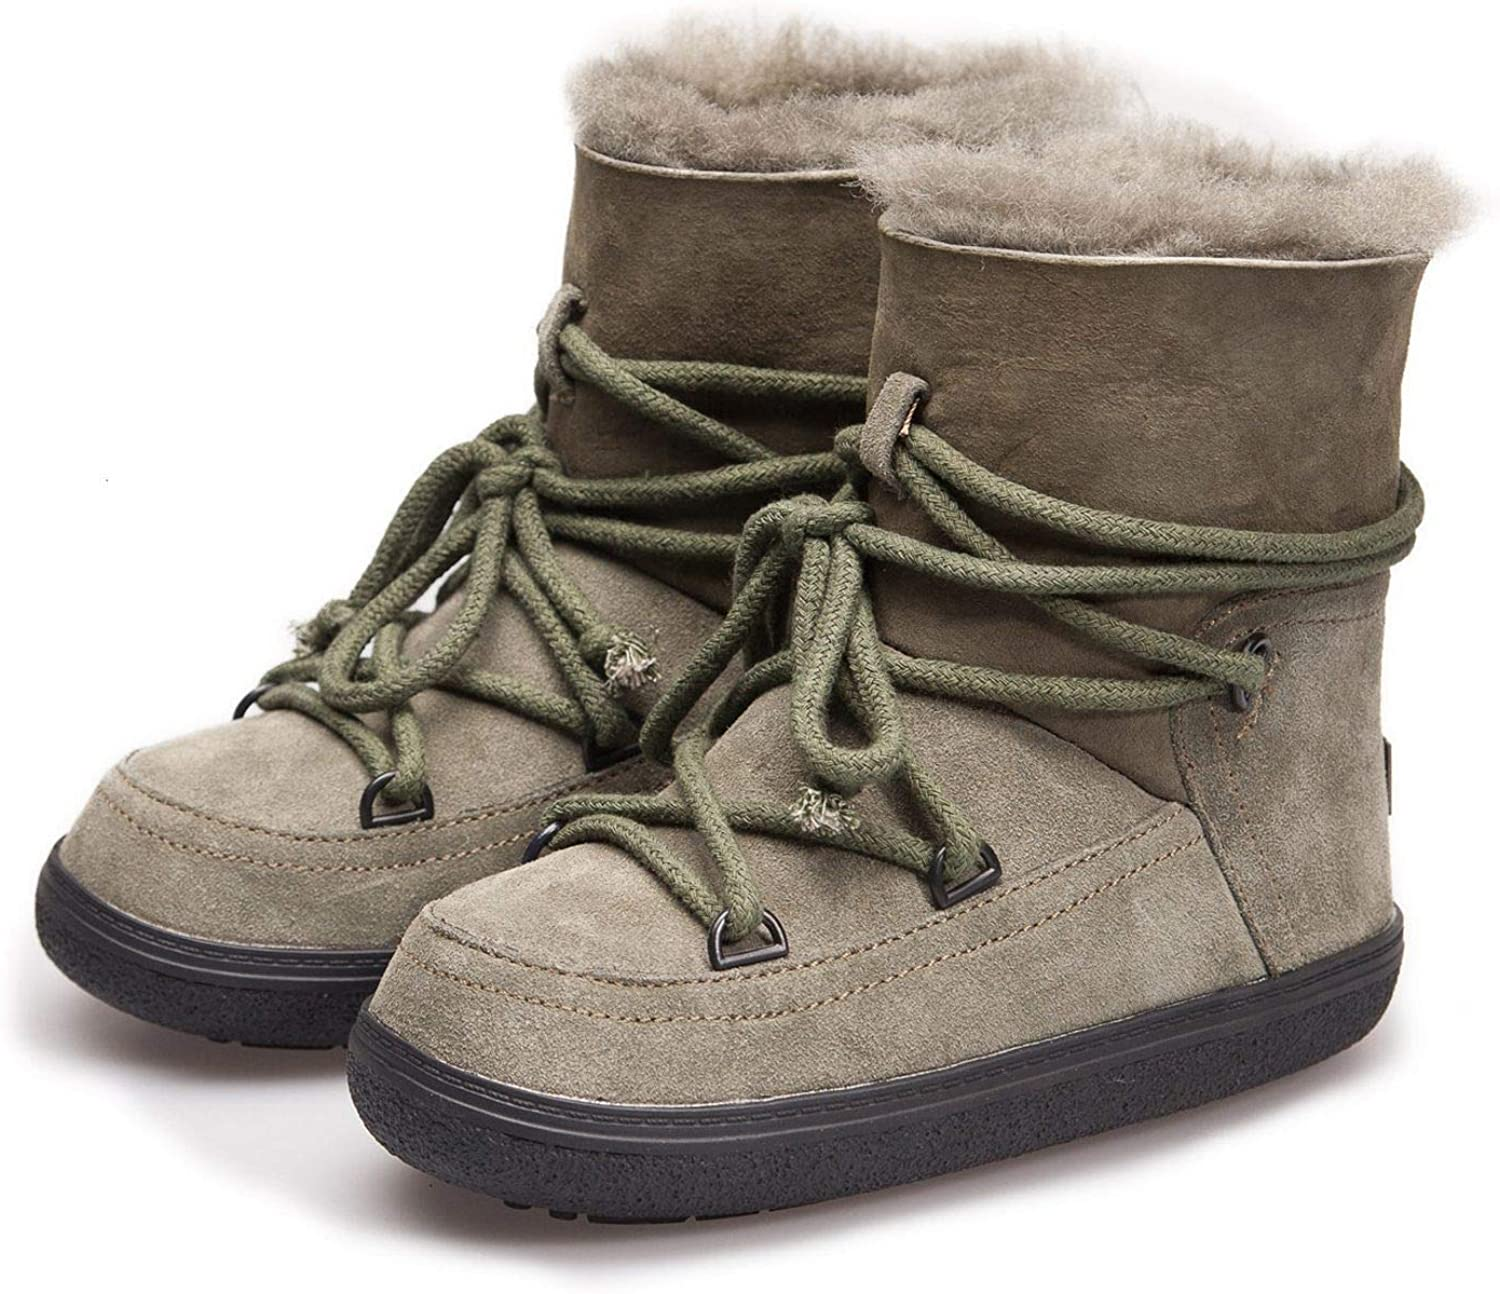 HaHapo Winter Real Leather Boots Women's Wool Fur Snow Boots Thickening Space Boots Warm Cross-Tied Boots